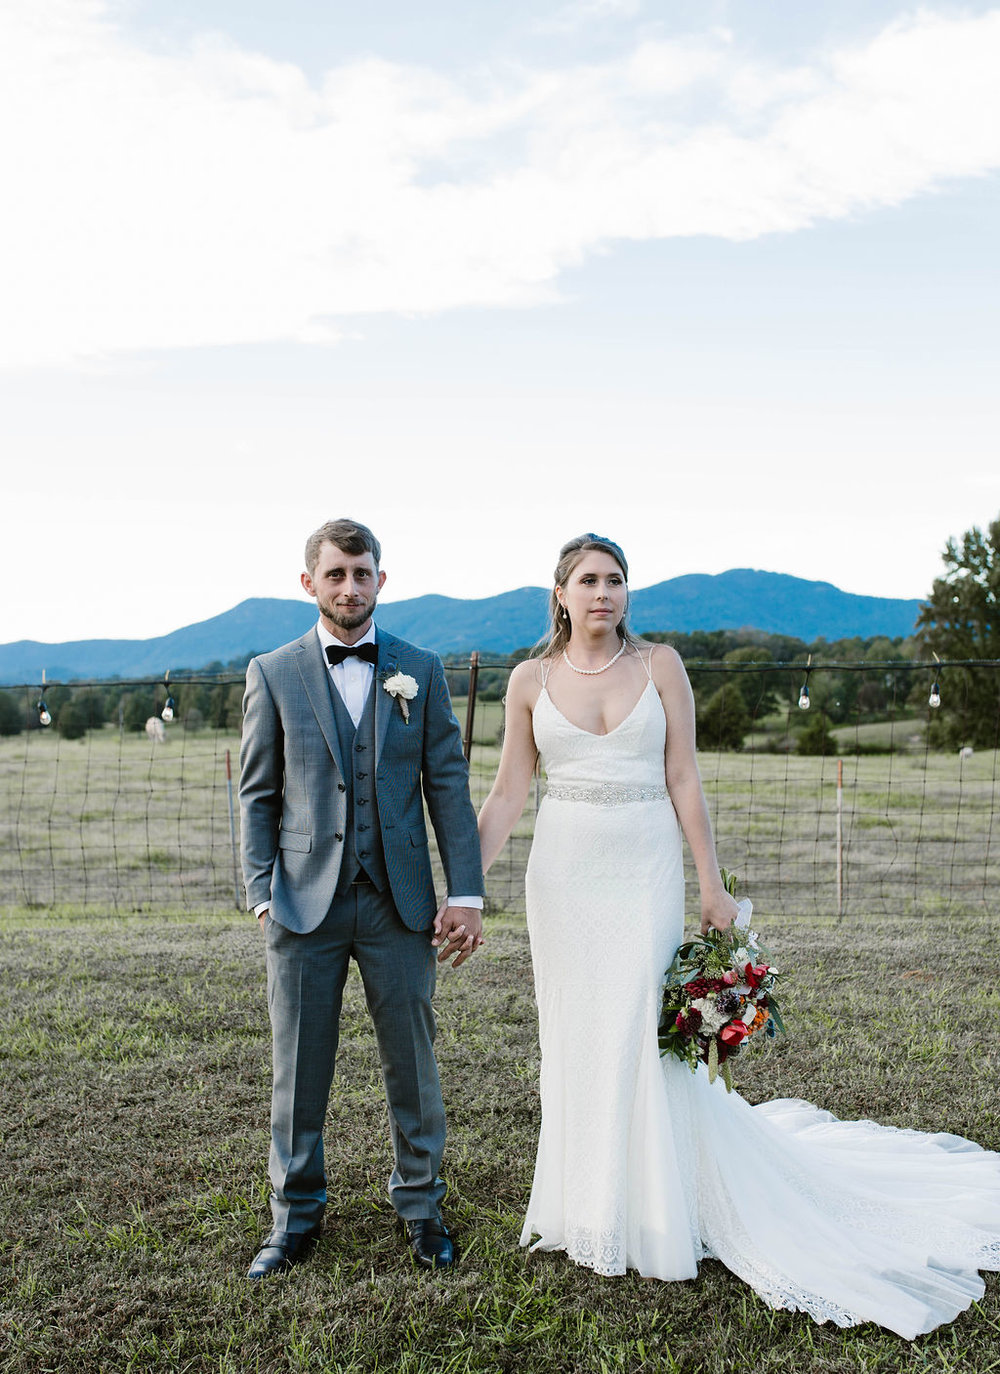 JORDAN'S RUSTIC, ROMANTIC NORTH CAROLINA WEDDING